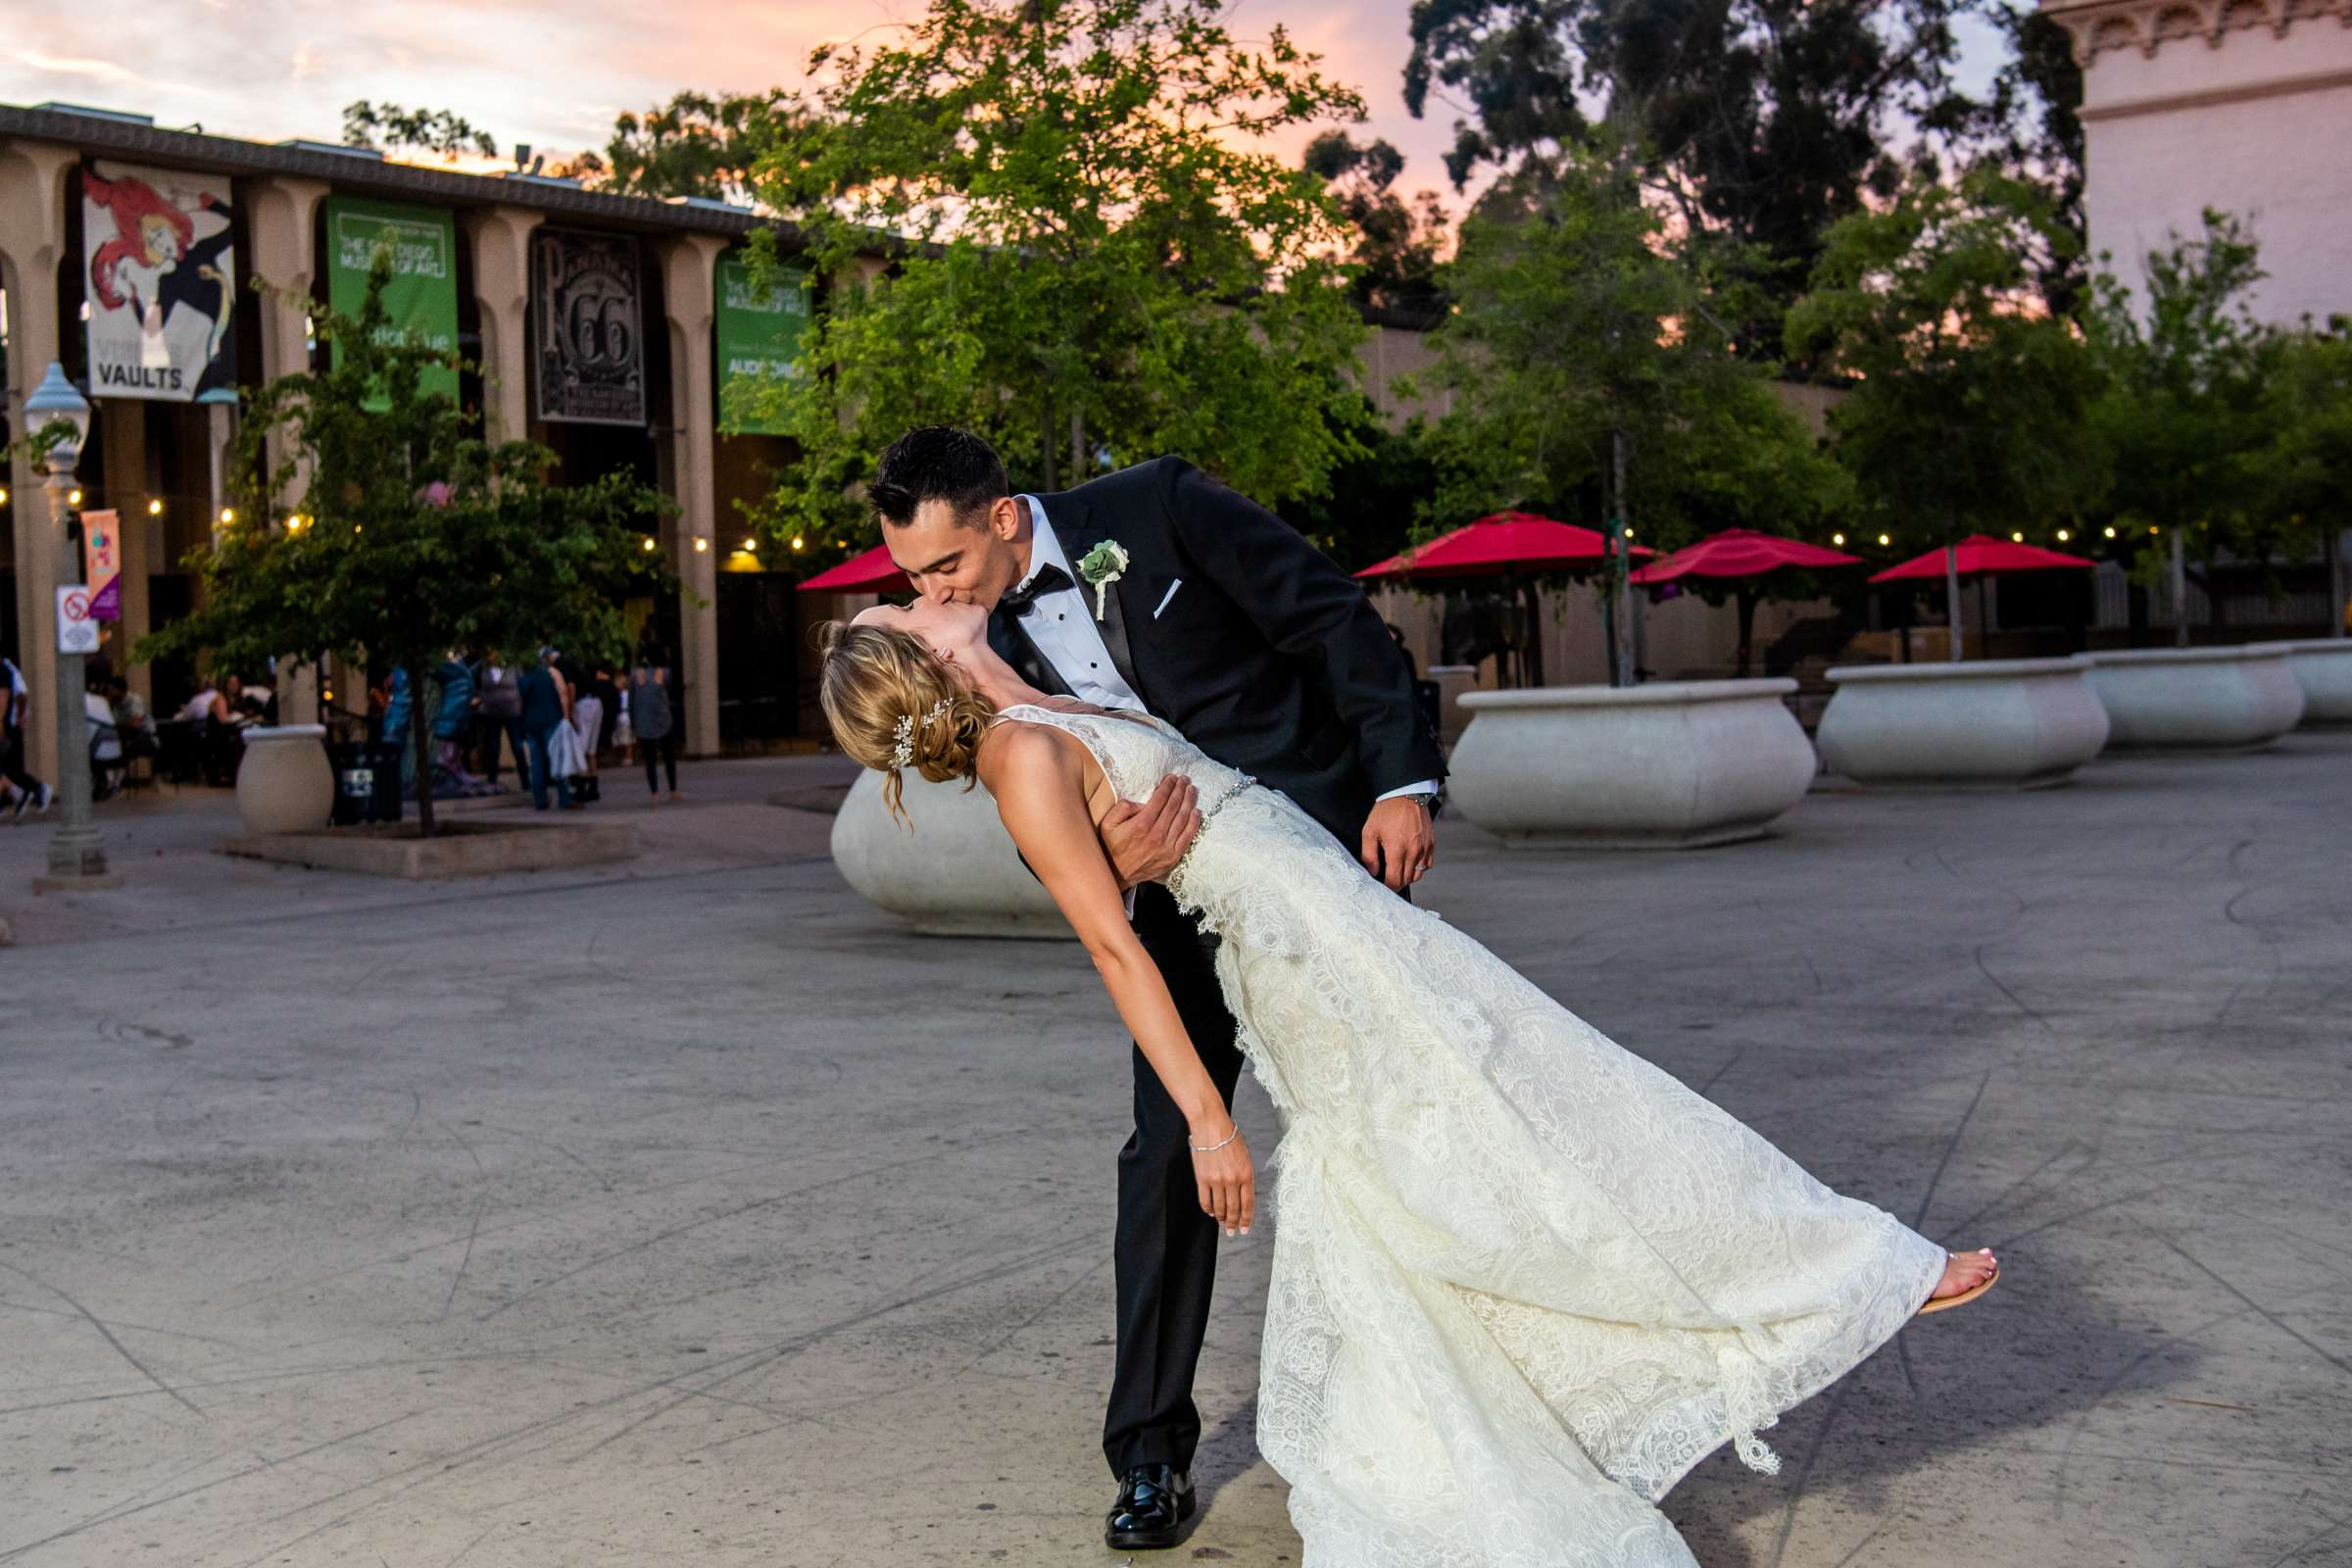 The Prado Wedding coordinated by Bliss Events, Sara and Marvin Wedding Photo #559644 by True Photography